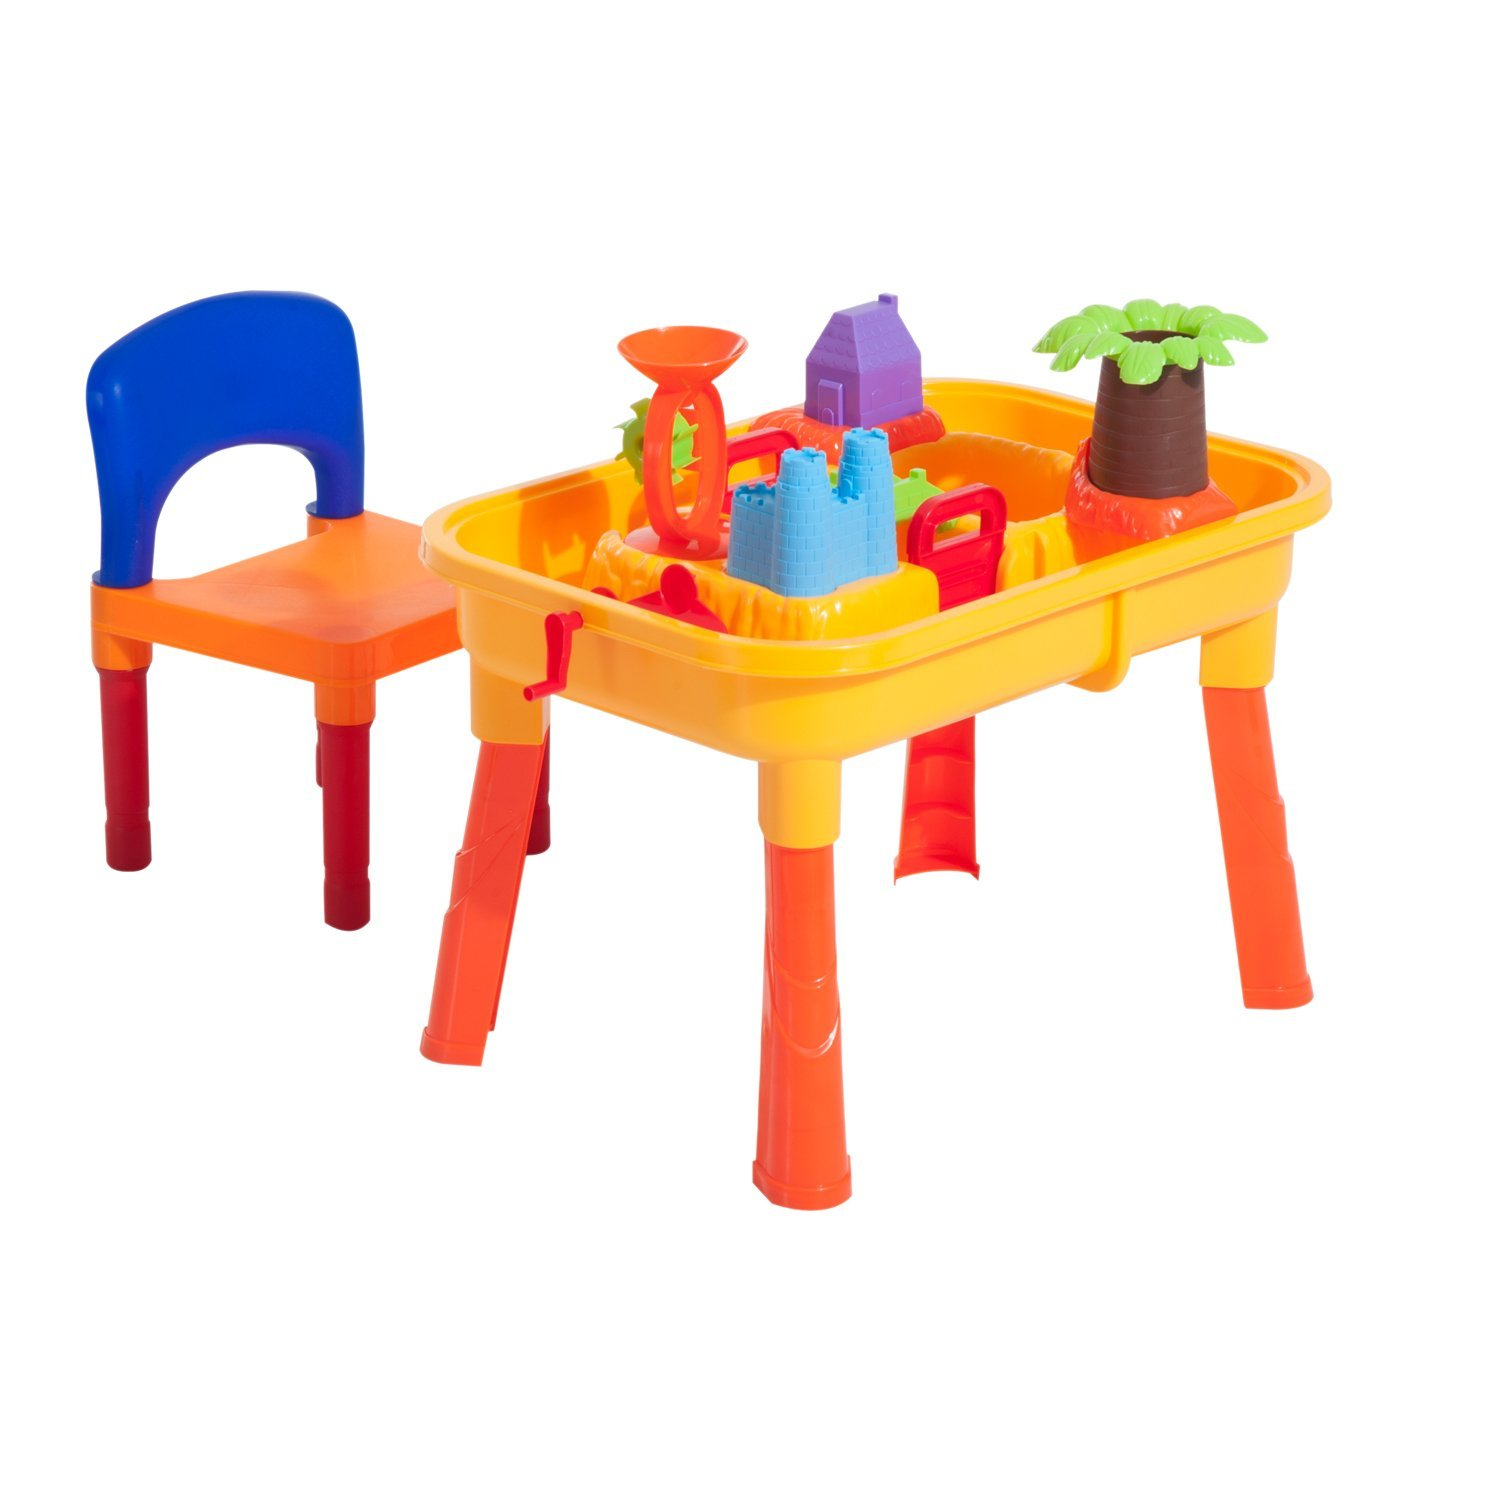 HOMCOM 32 PCs With Table Chair Castle Play Set Cookie Cutters PP 61.5x42x39.3 Cm